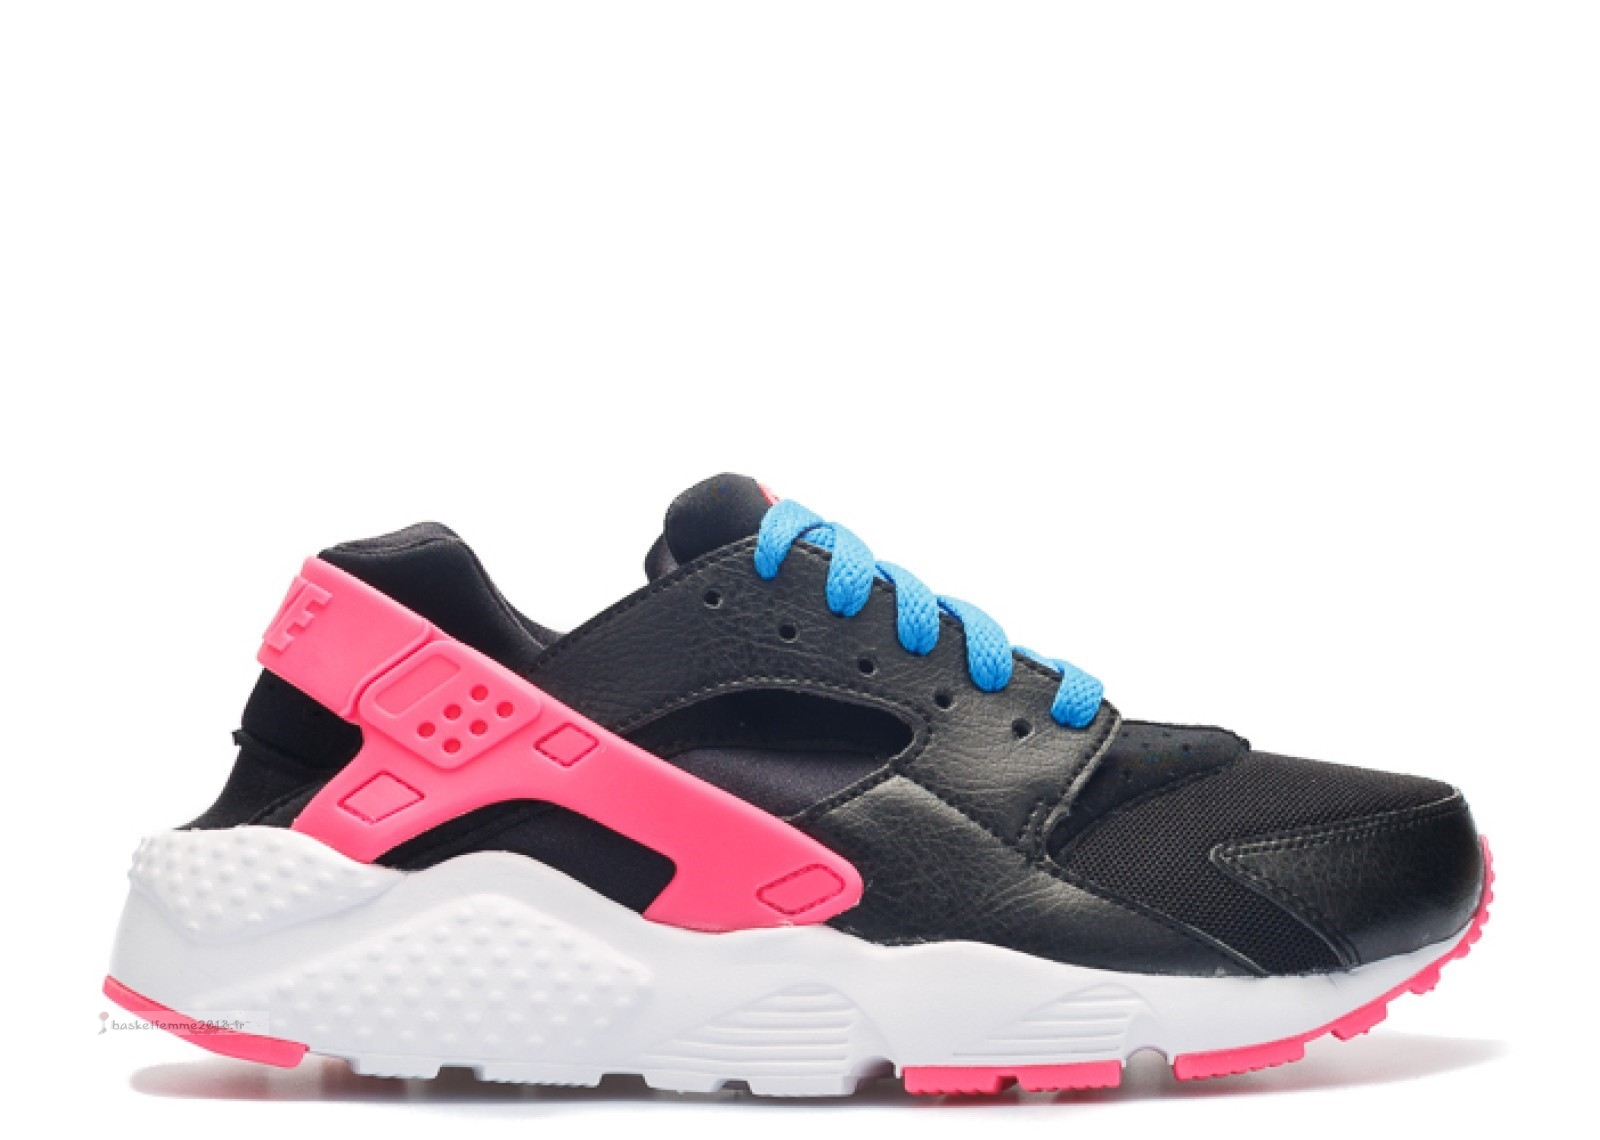 Nike Air Huarache Run (Gs) Noir Rose (654280-004) Chaussure de Basket